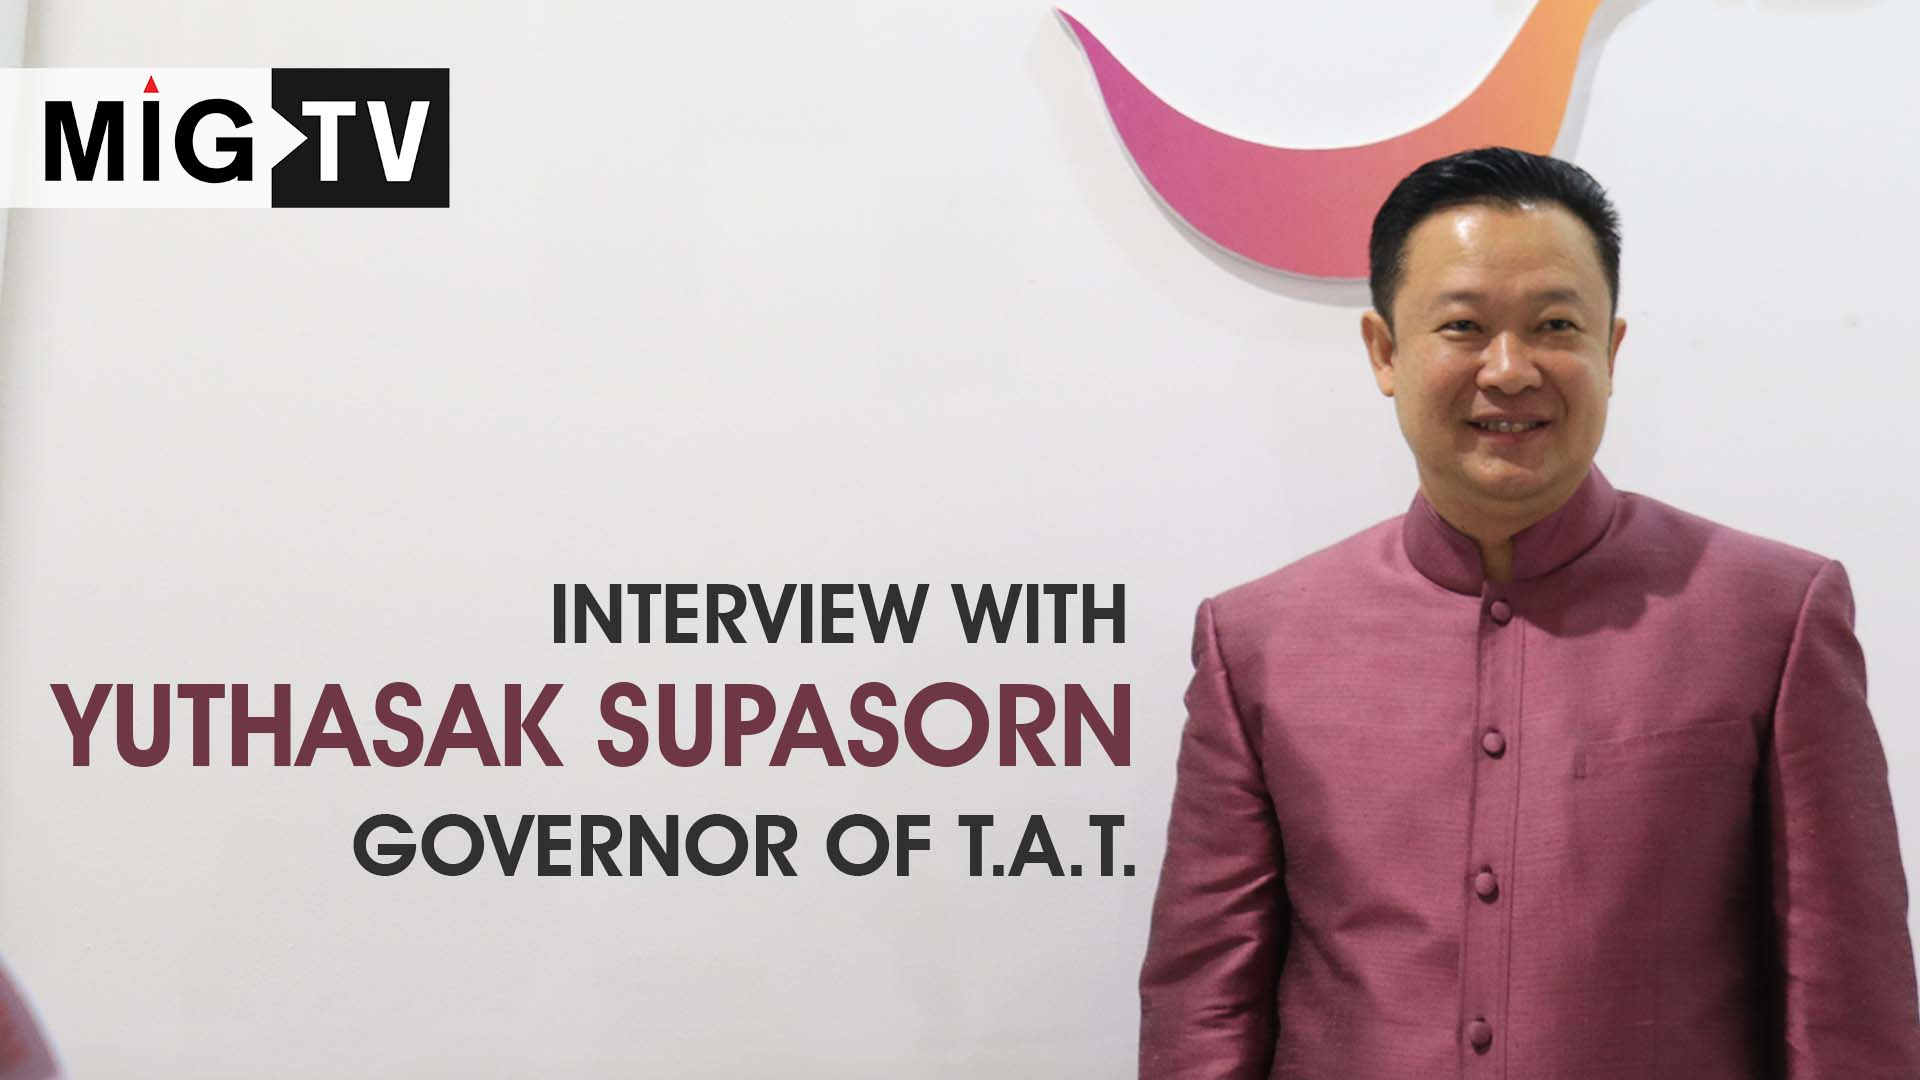 Interview with Yuthasak Supasorn, Governor of the Tourism Authority of Thailand